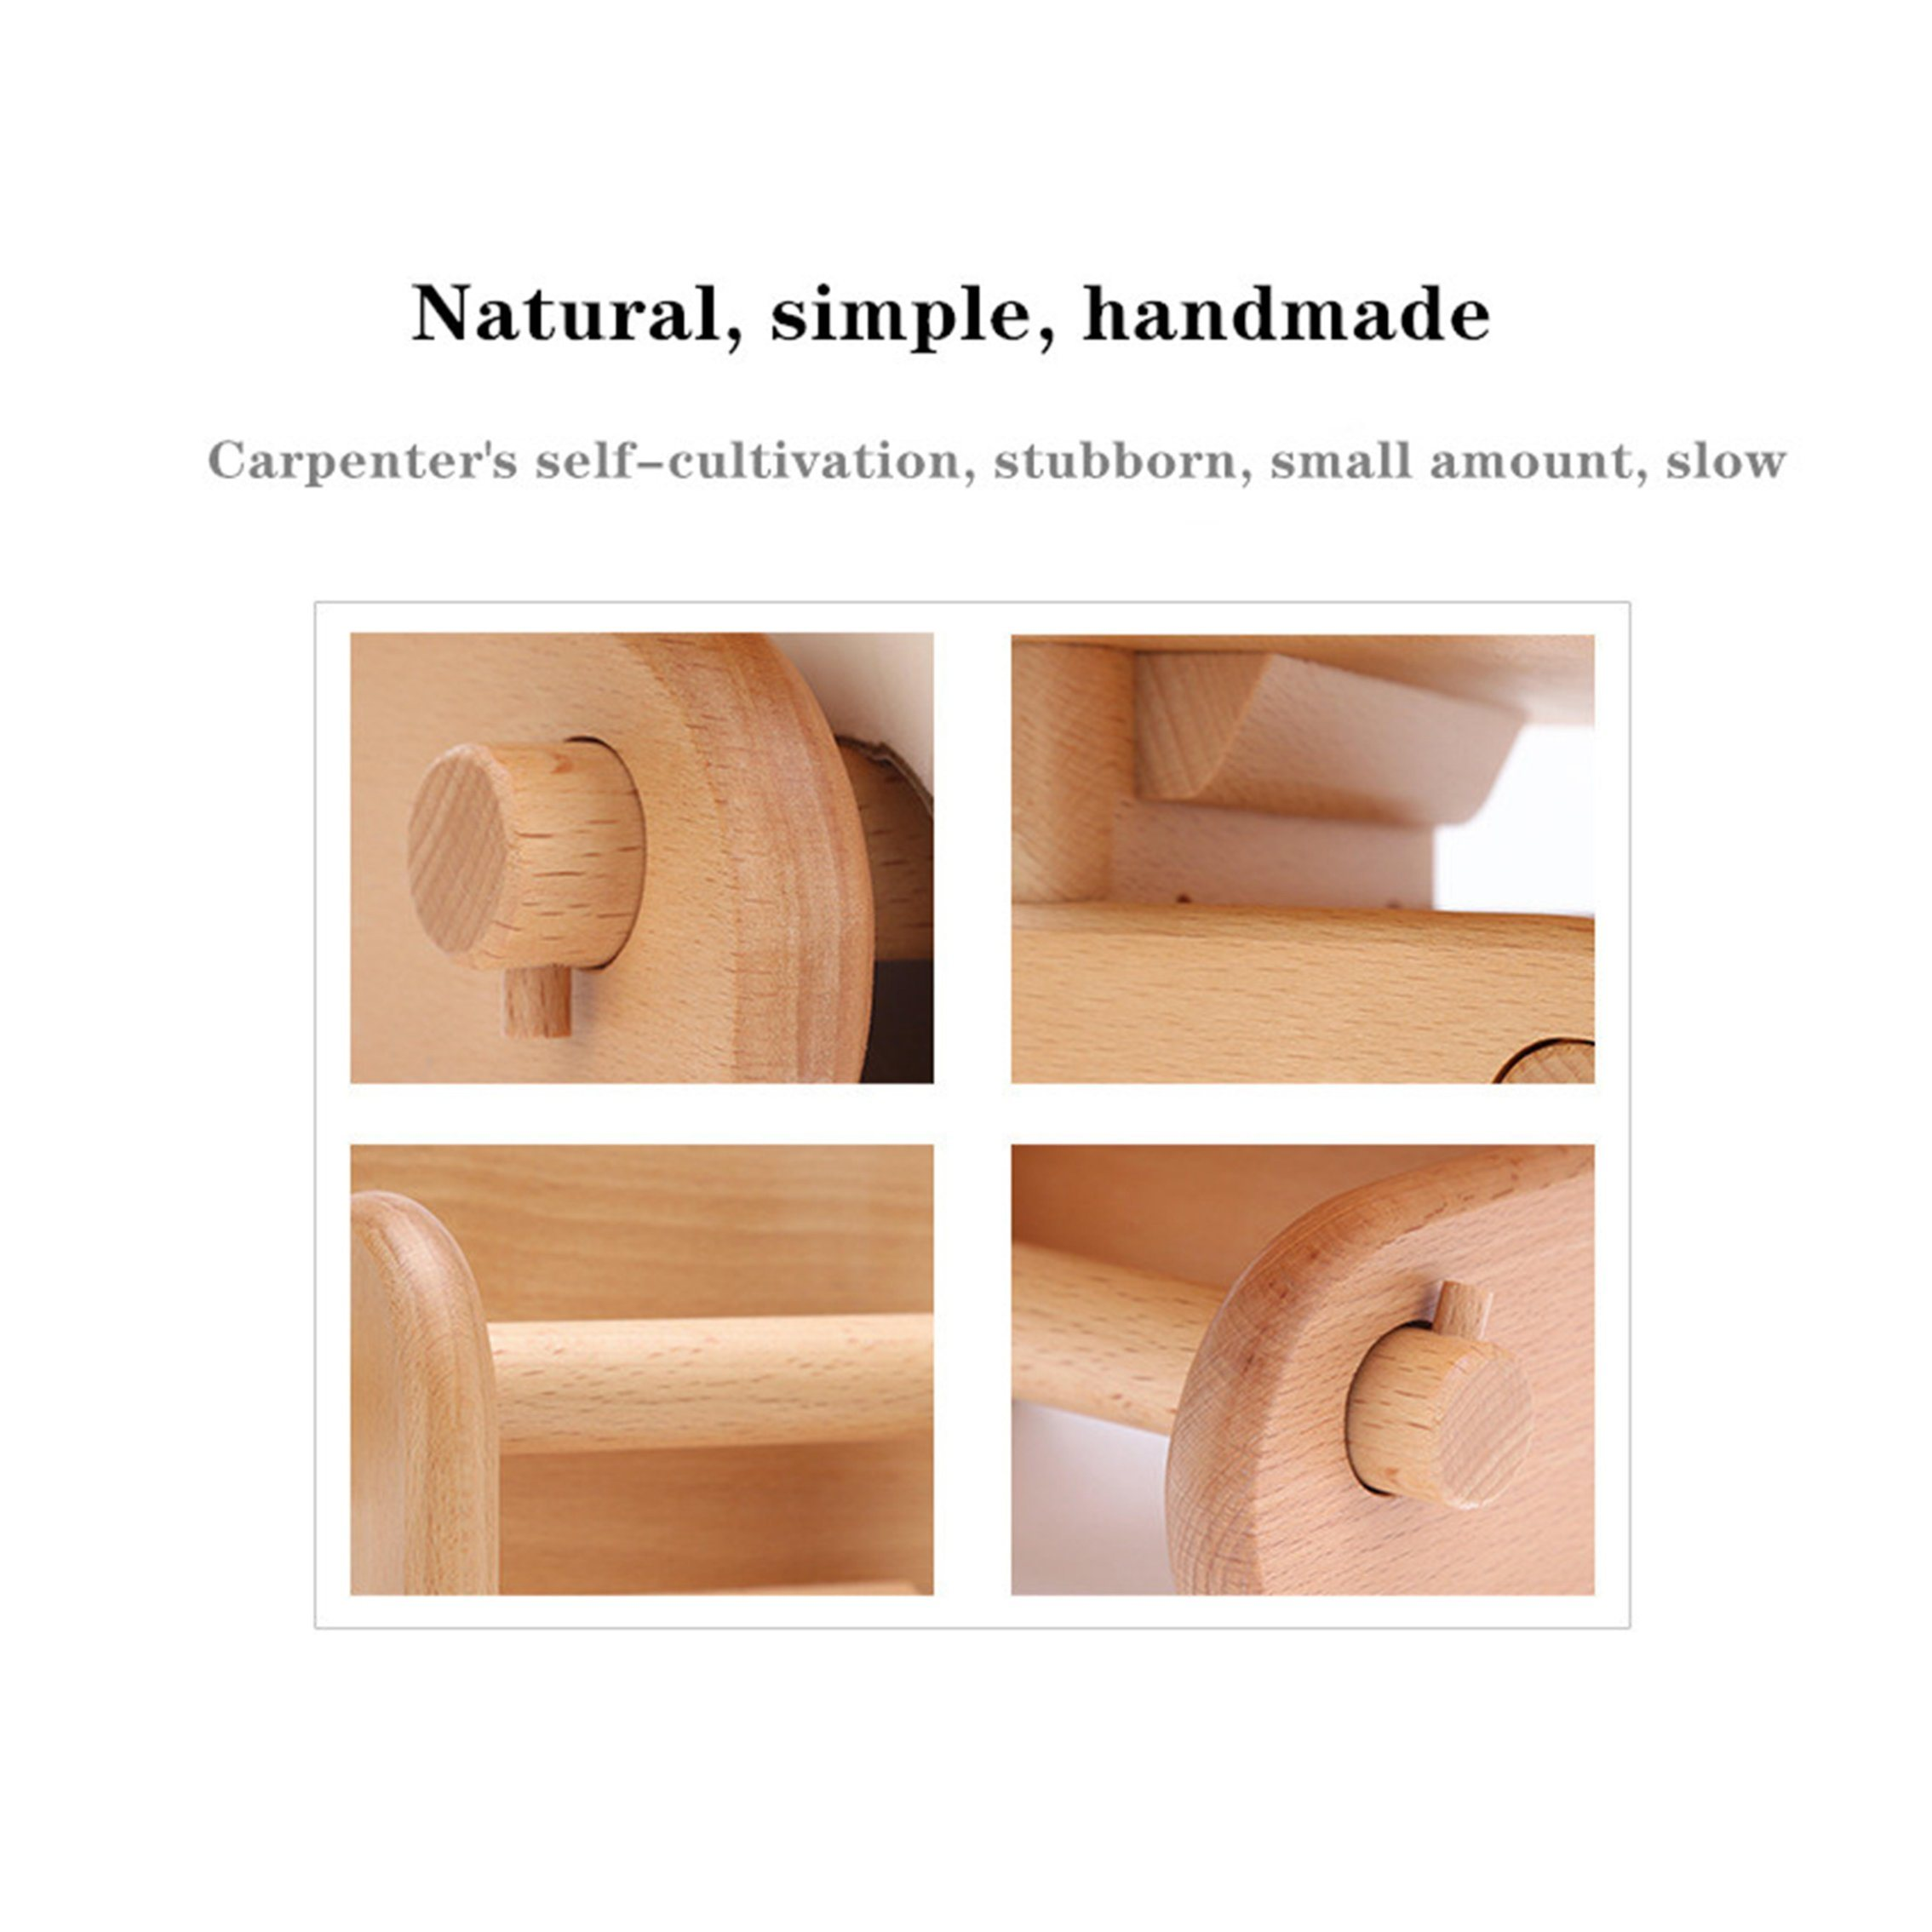 China Wooden Creative Paper Towel Rack Toilet Toilet Paper Holder Kitchen Wall Mounted Storage Wooden Roll Holder Amaw 0035 China Wooden Creative